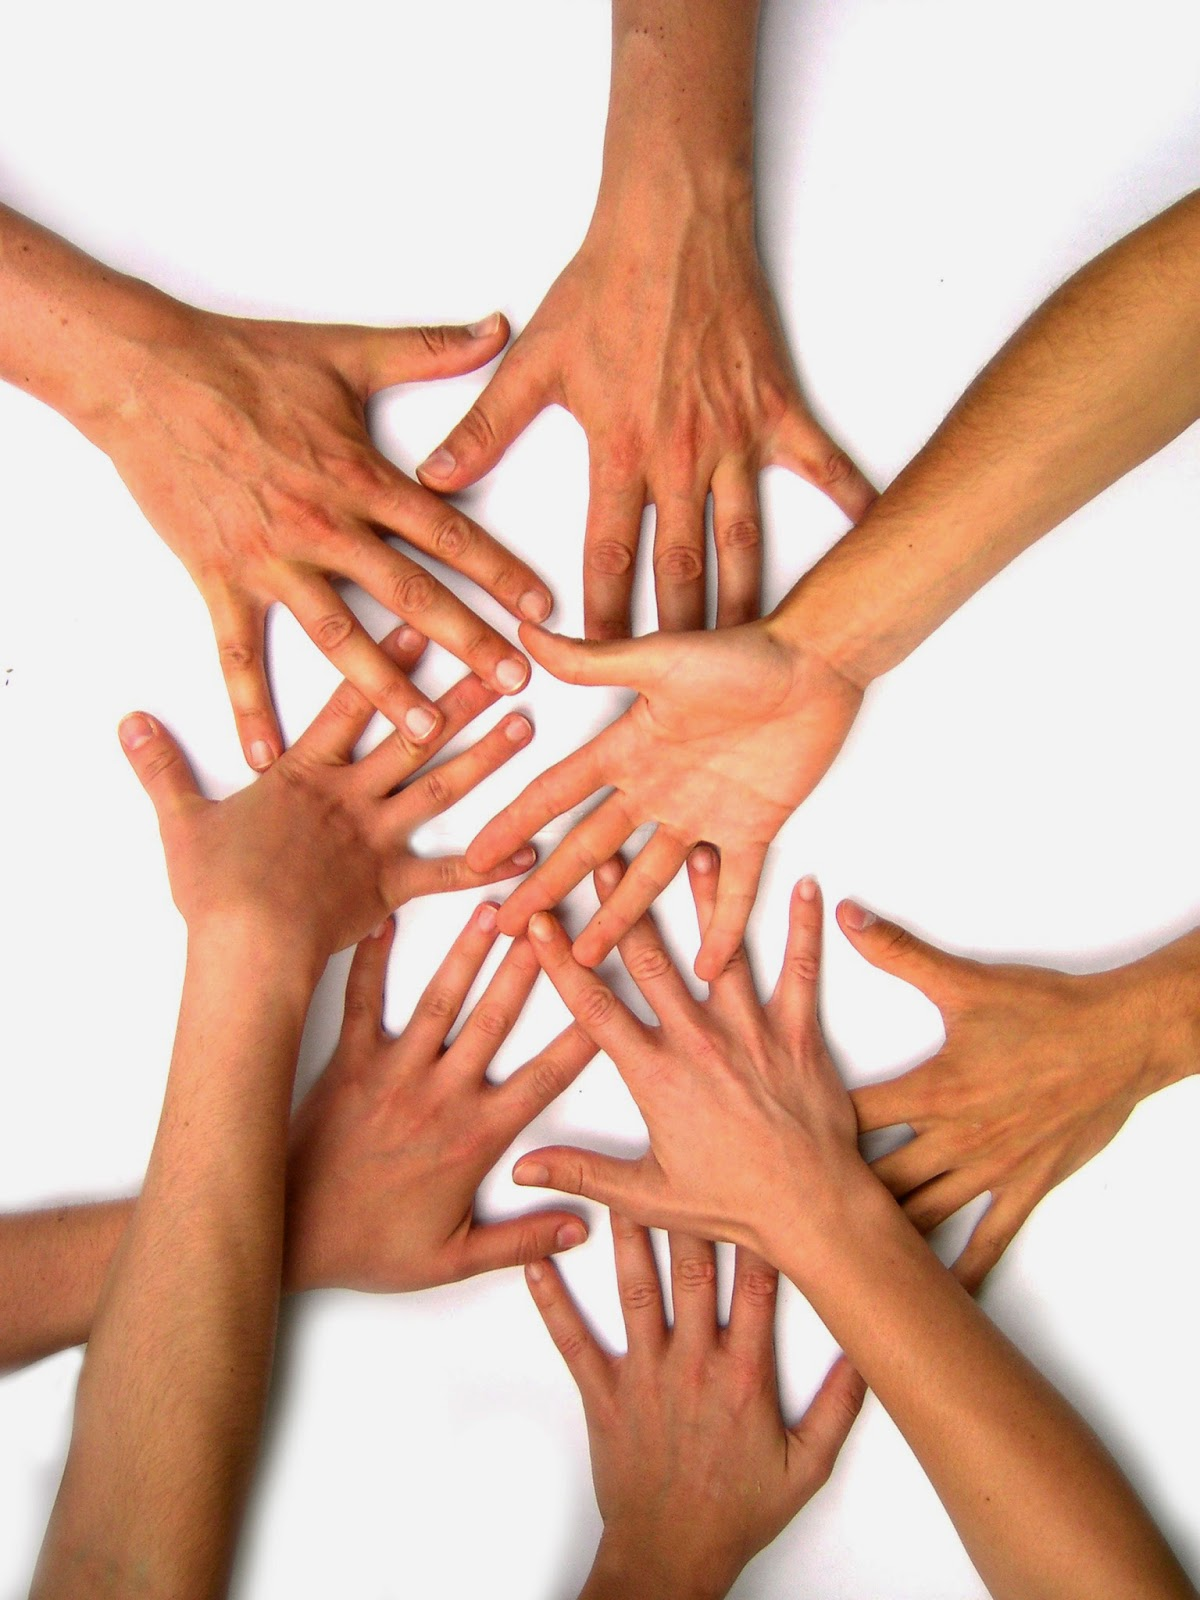 Ideas for fundraising for nonprofit organizations